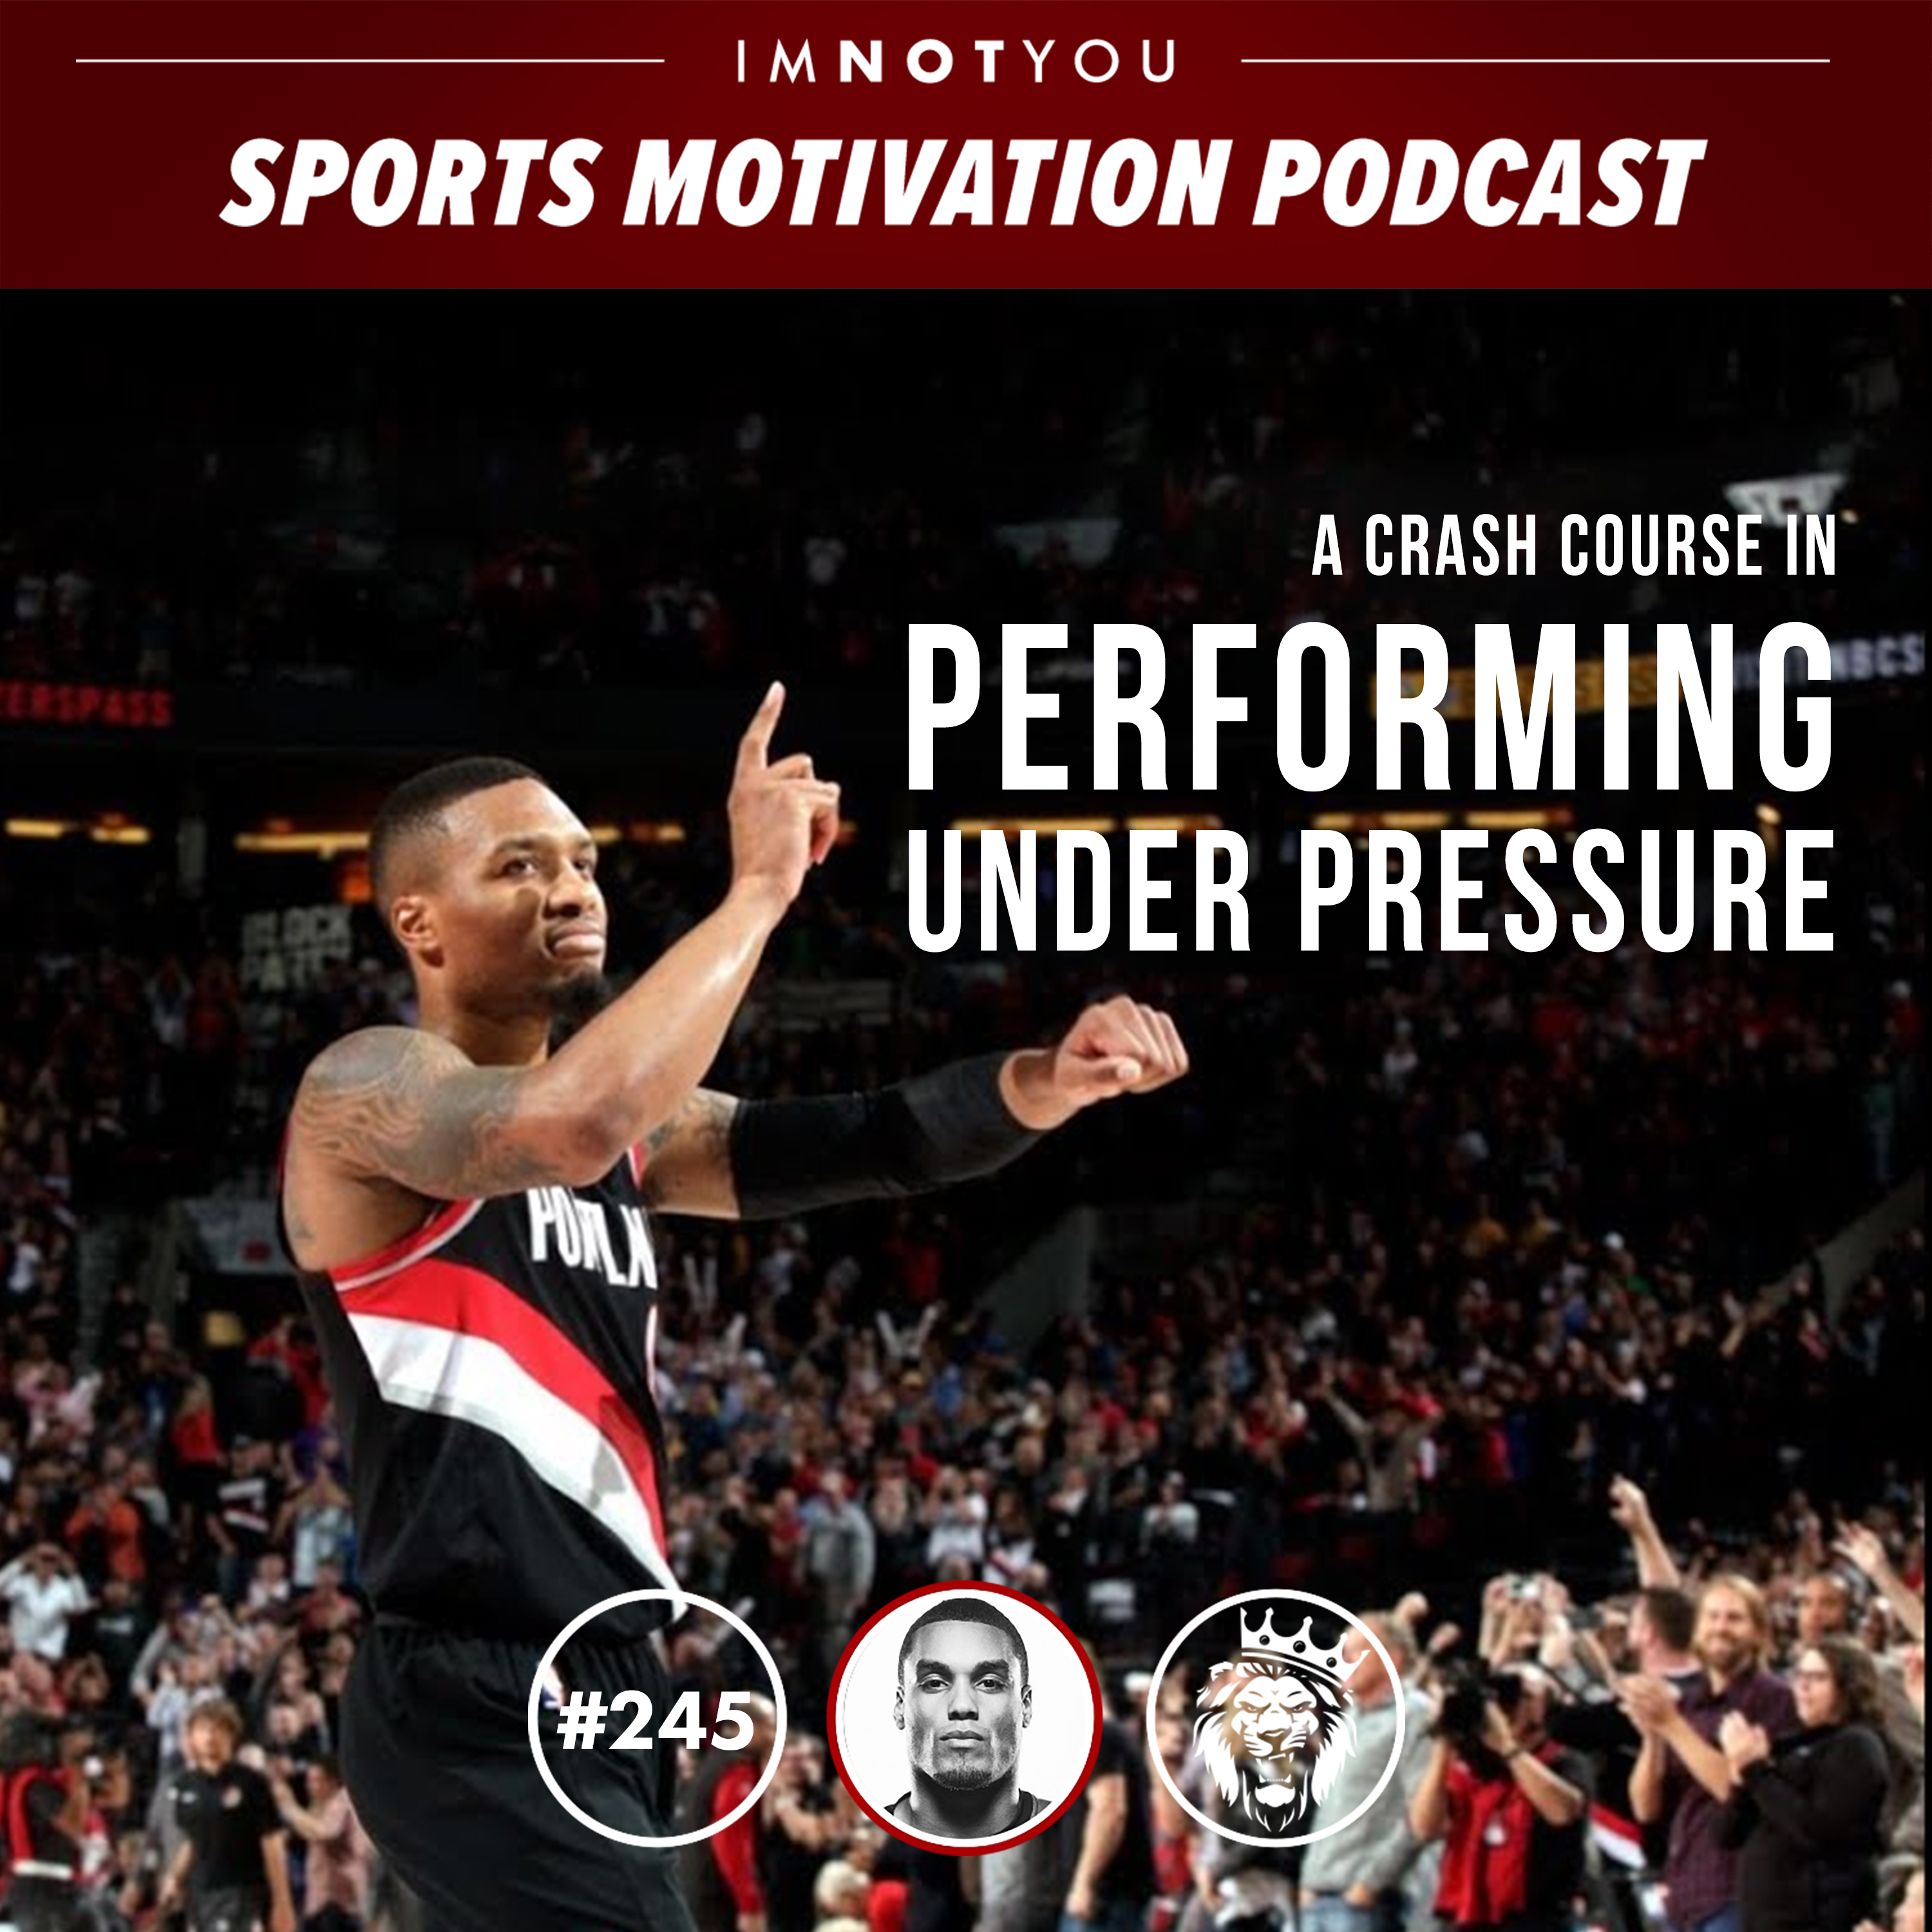 245: A Crash Course in Performing Under Pressure